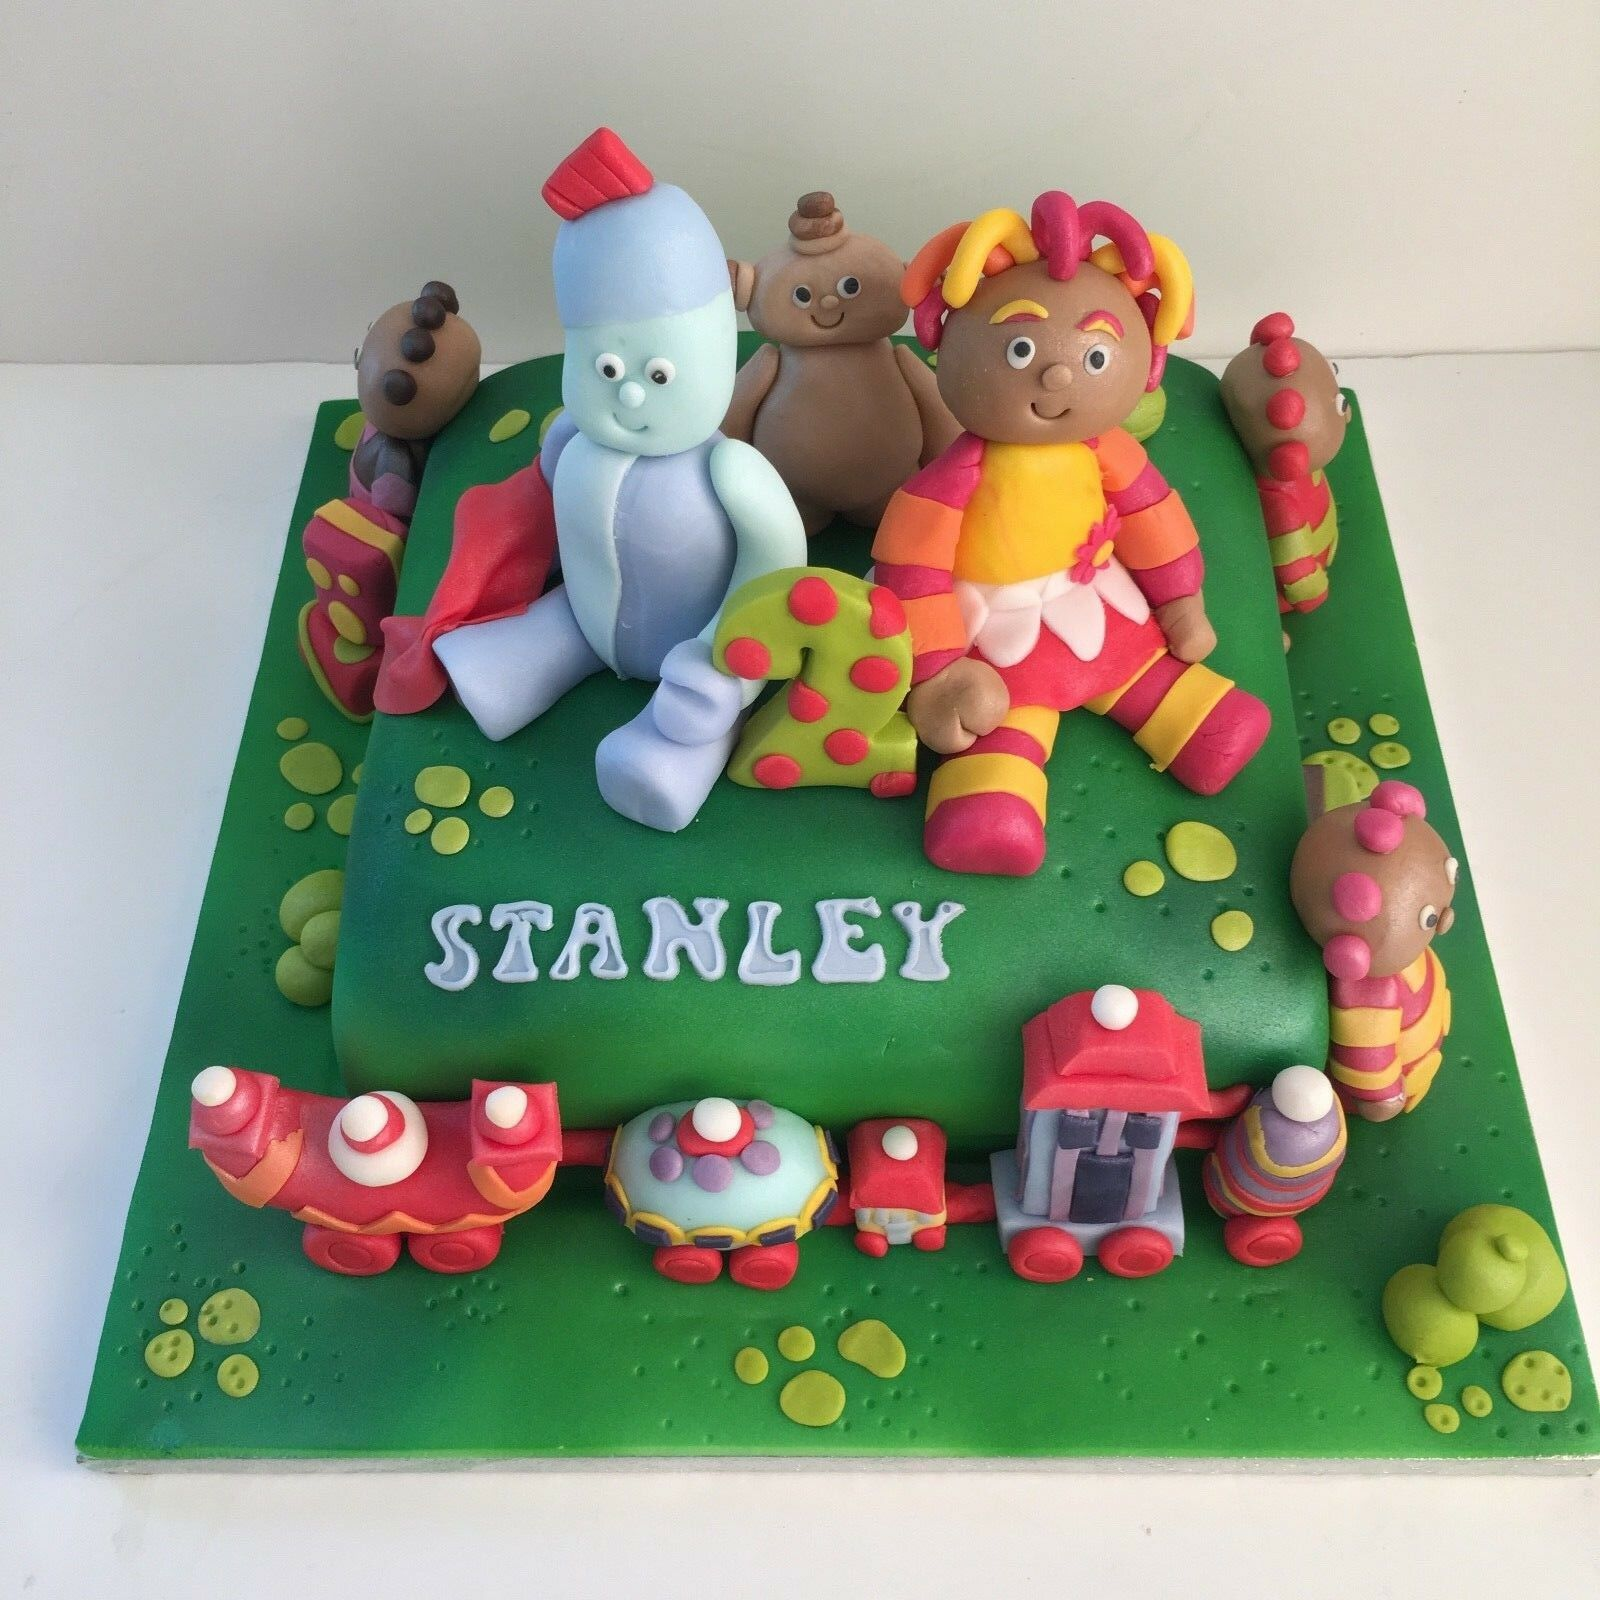 Best Iggle Piggle Cake Decorations deals | Compare Prices on dealsan ...